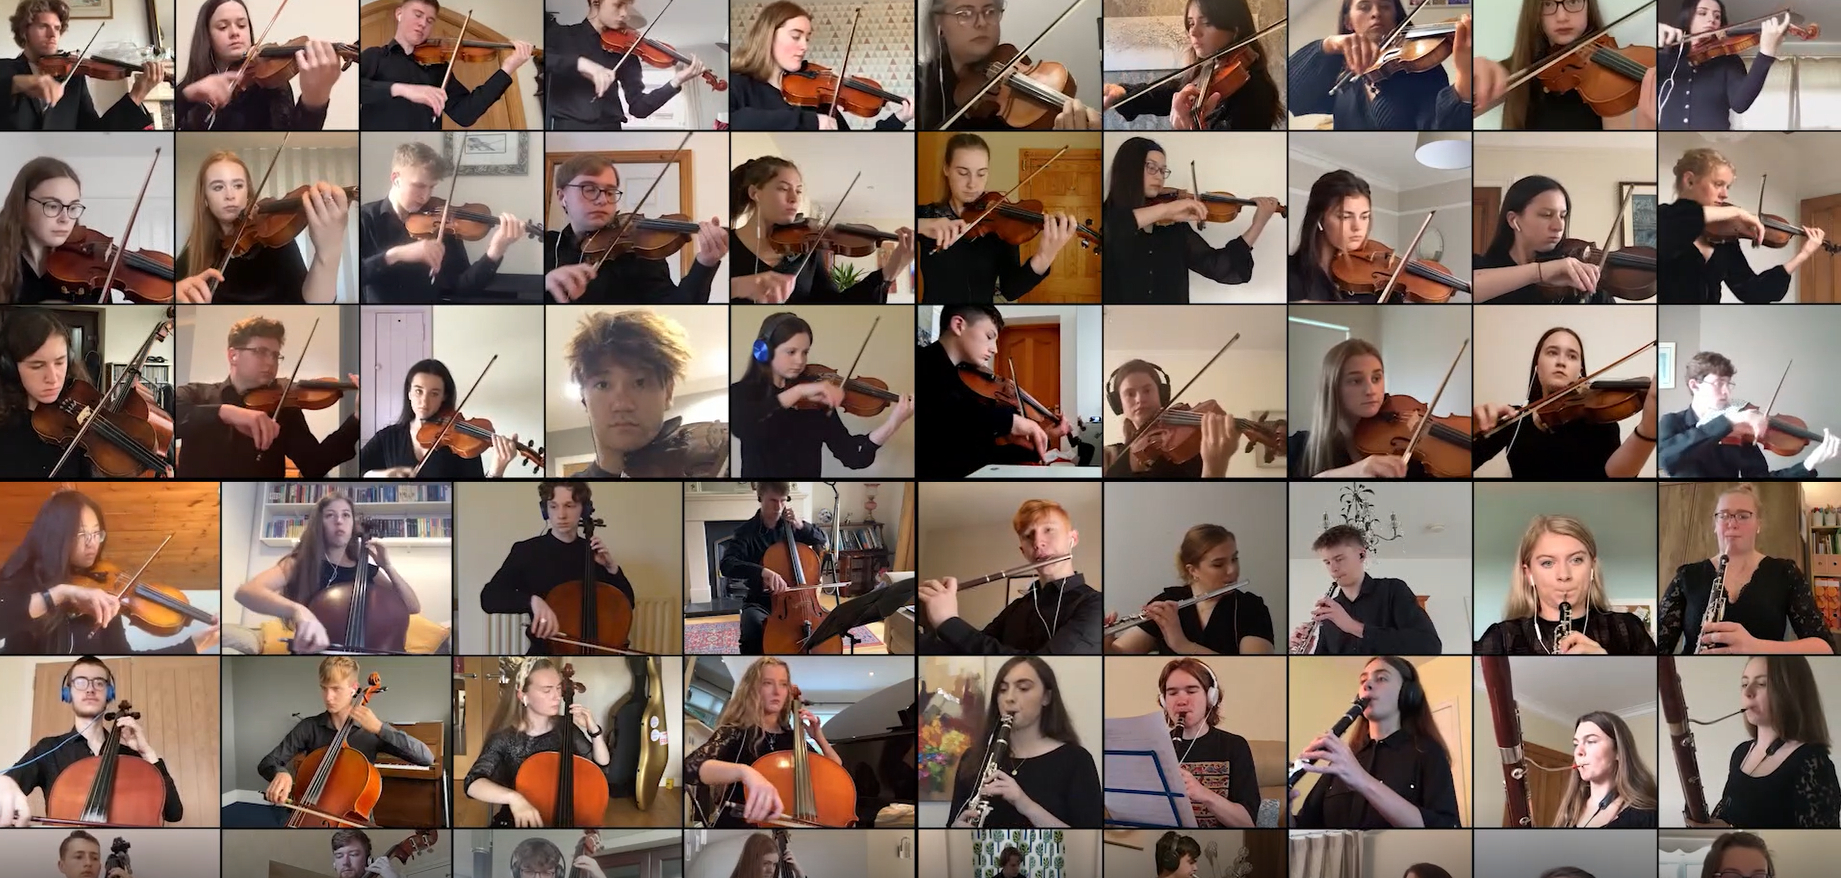 Image with loads of young musicians performing in their own Zoom boxes